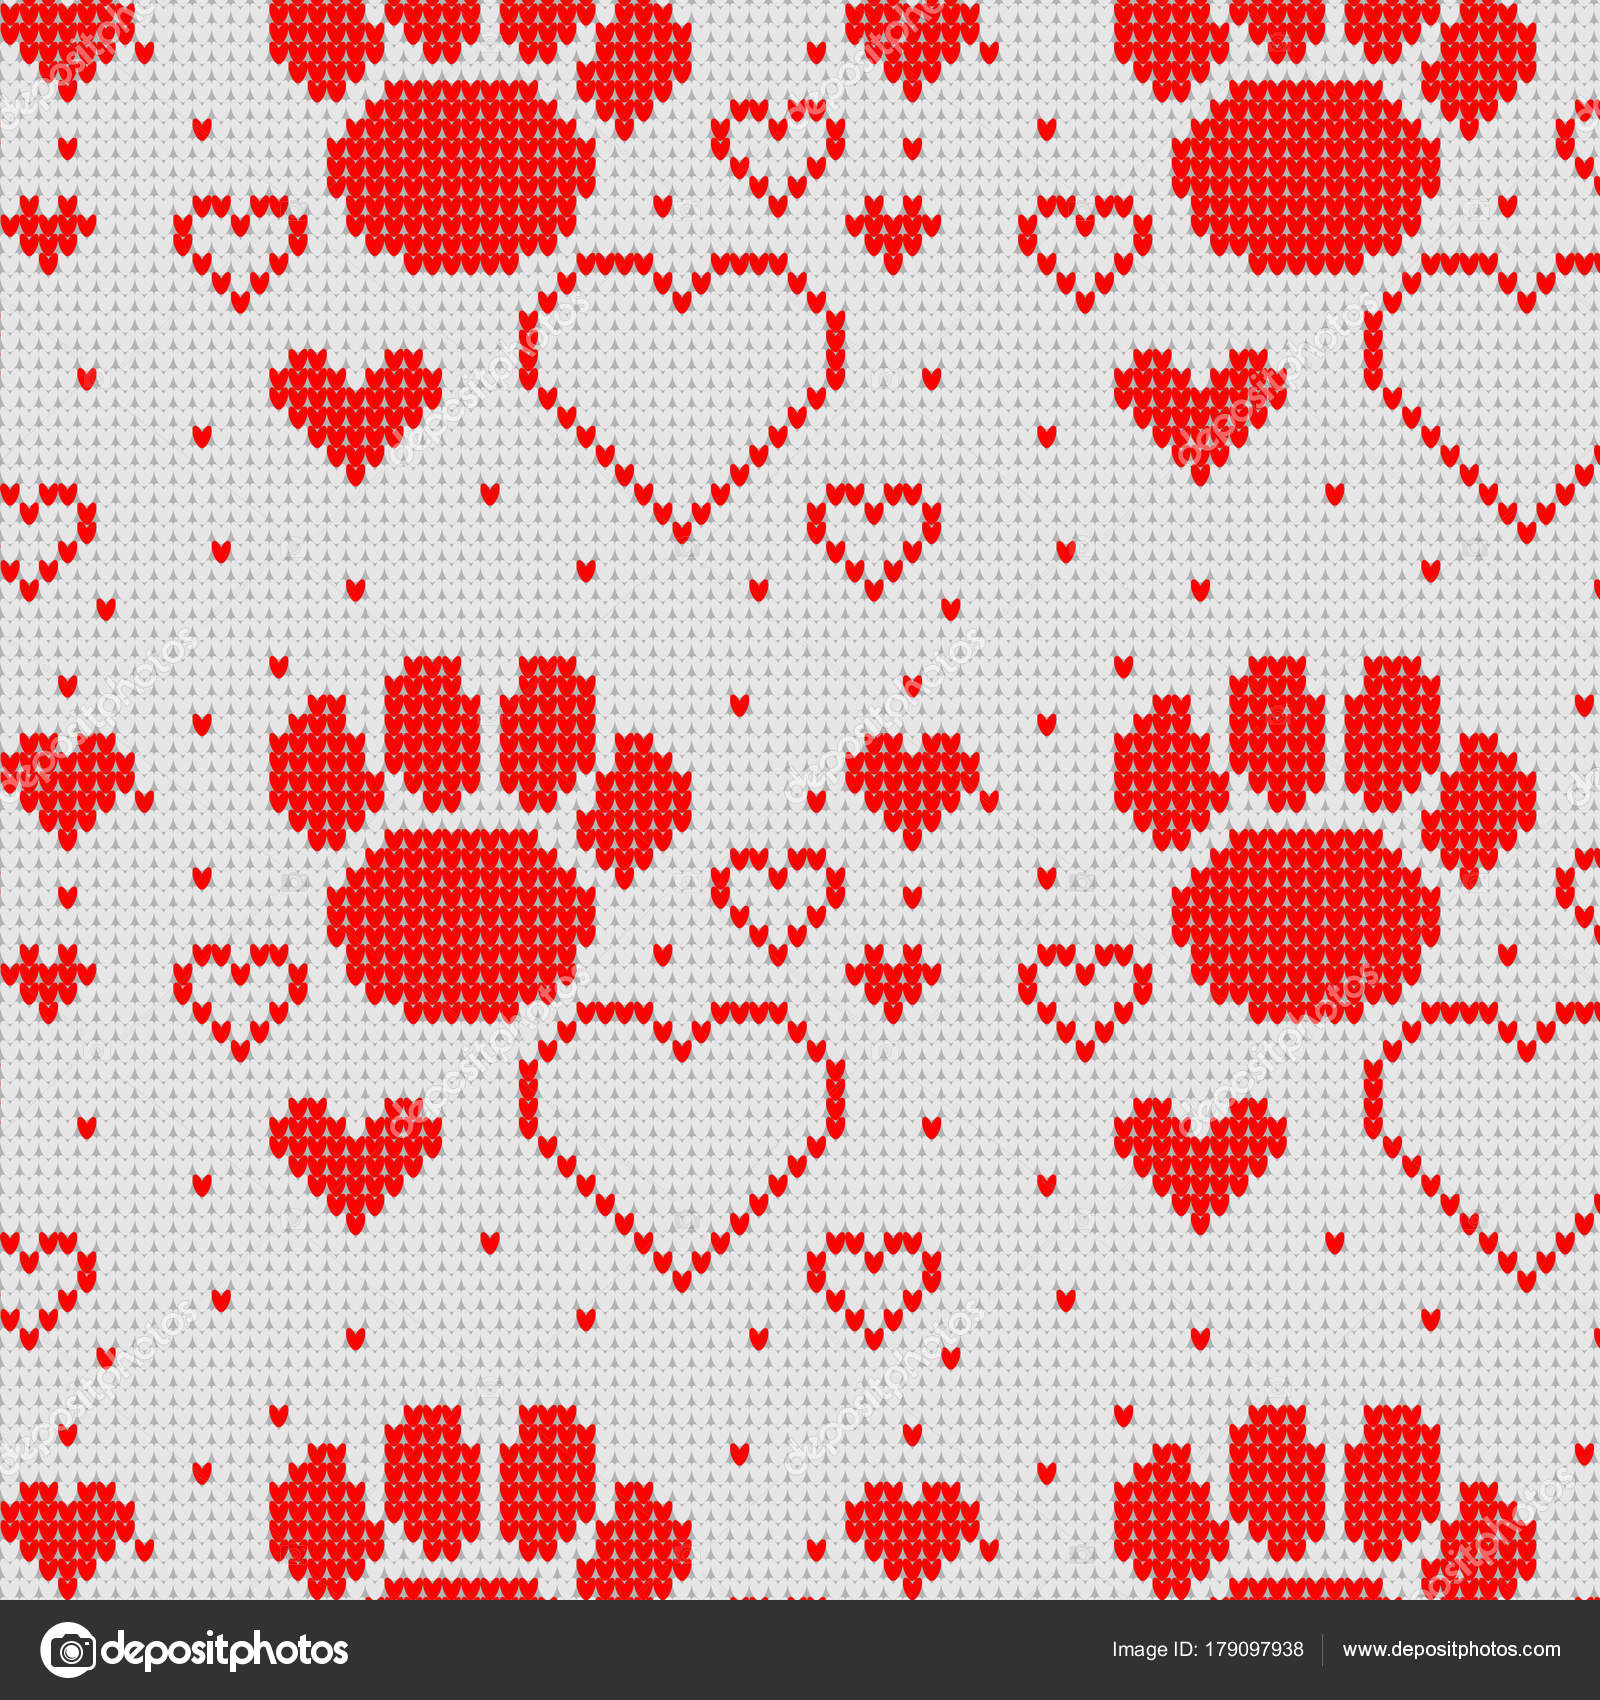 Seamless Knitting Patterns Seamless Knitted Pattern With Heart And Dog Paw Background Stock